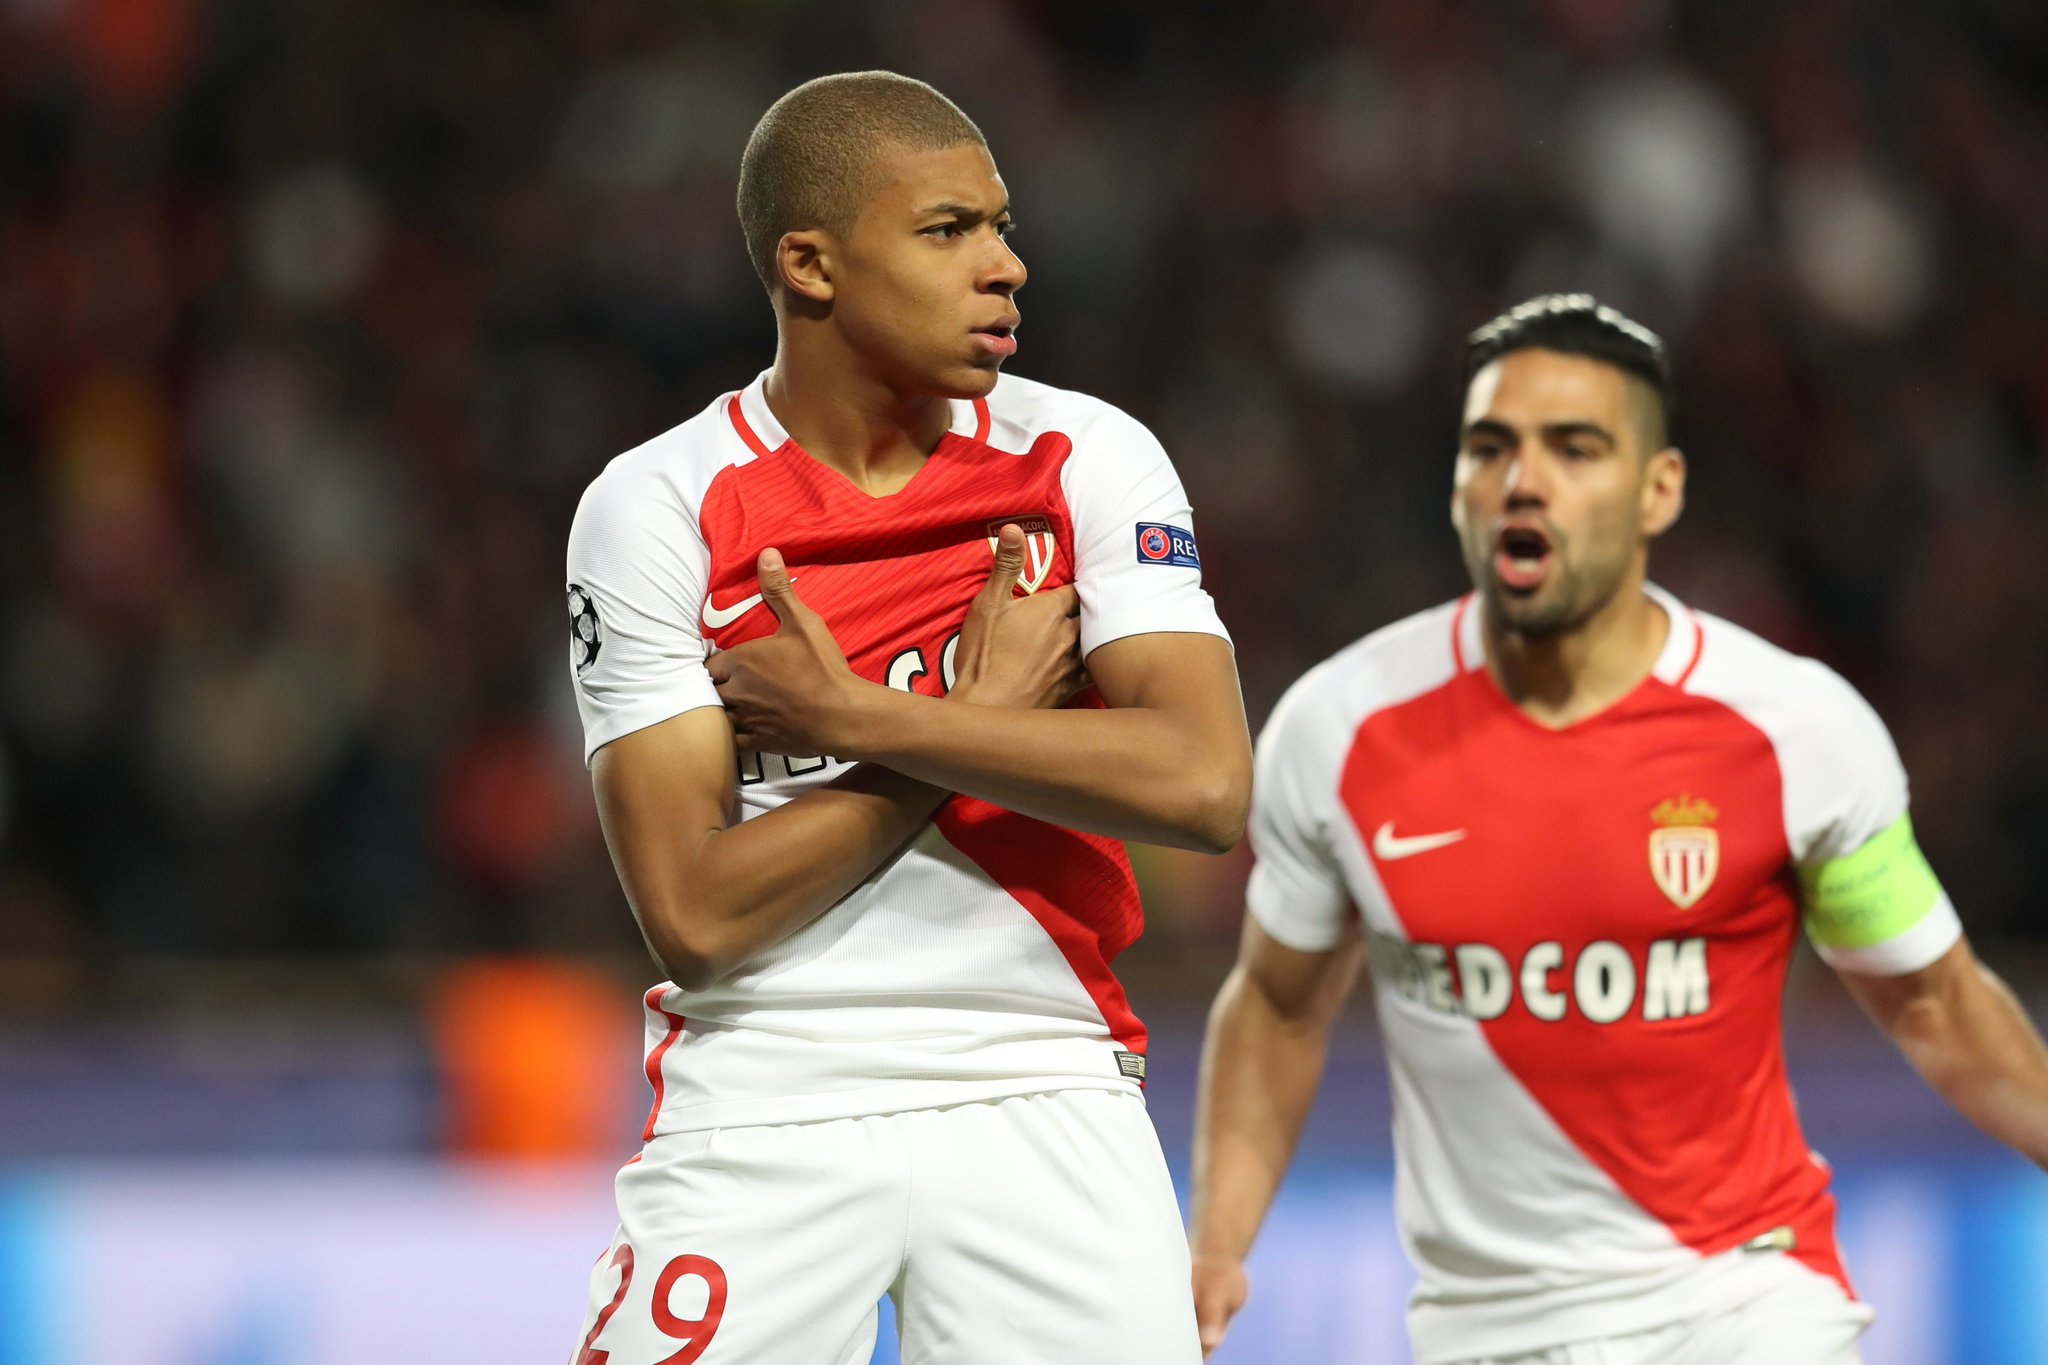 Squawka News On Twitter Monaco Forward Carlos Vinicius Bring The Arms Crossed Celebration Back To The Stade Louis Ii We Ve Seen That Before Https T Co 3kez8lgtzs